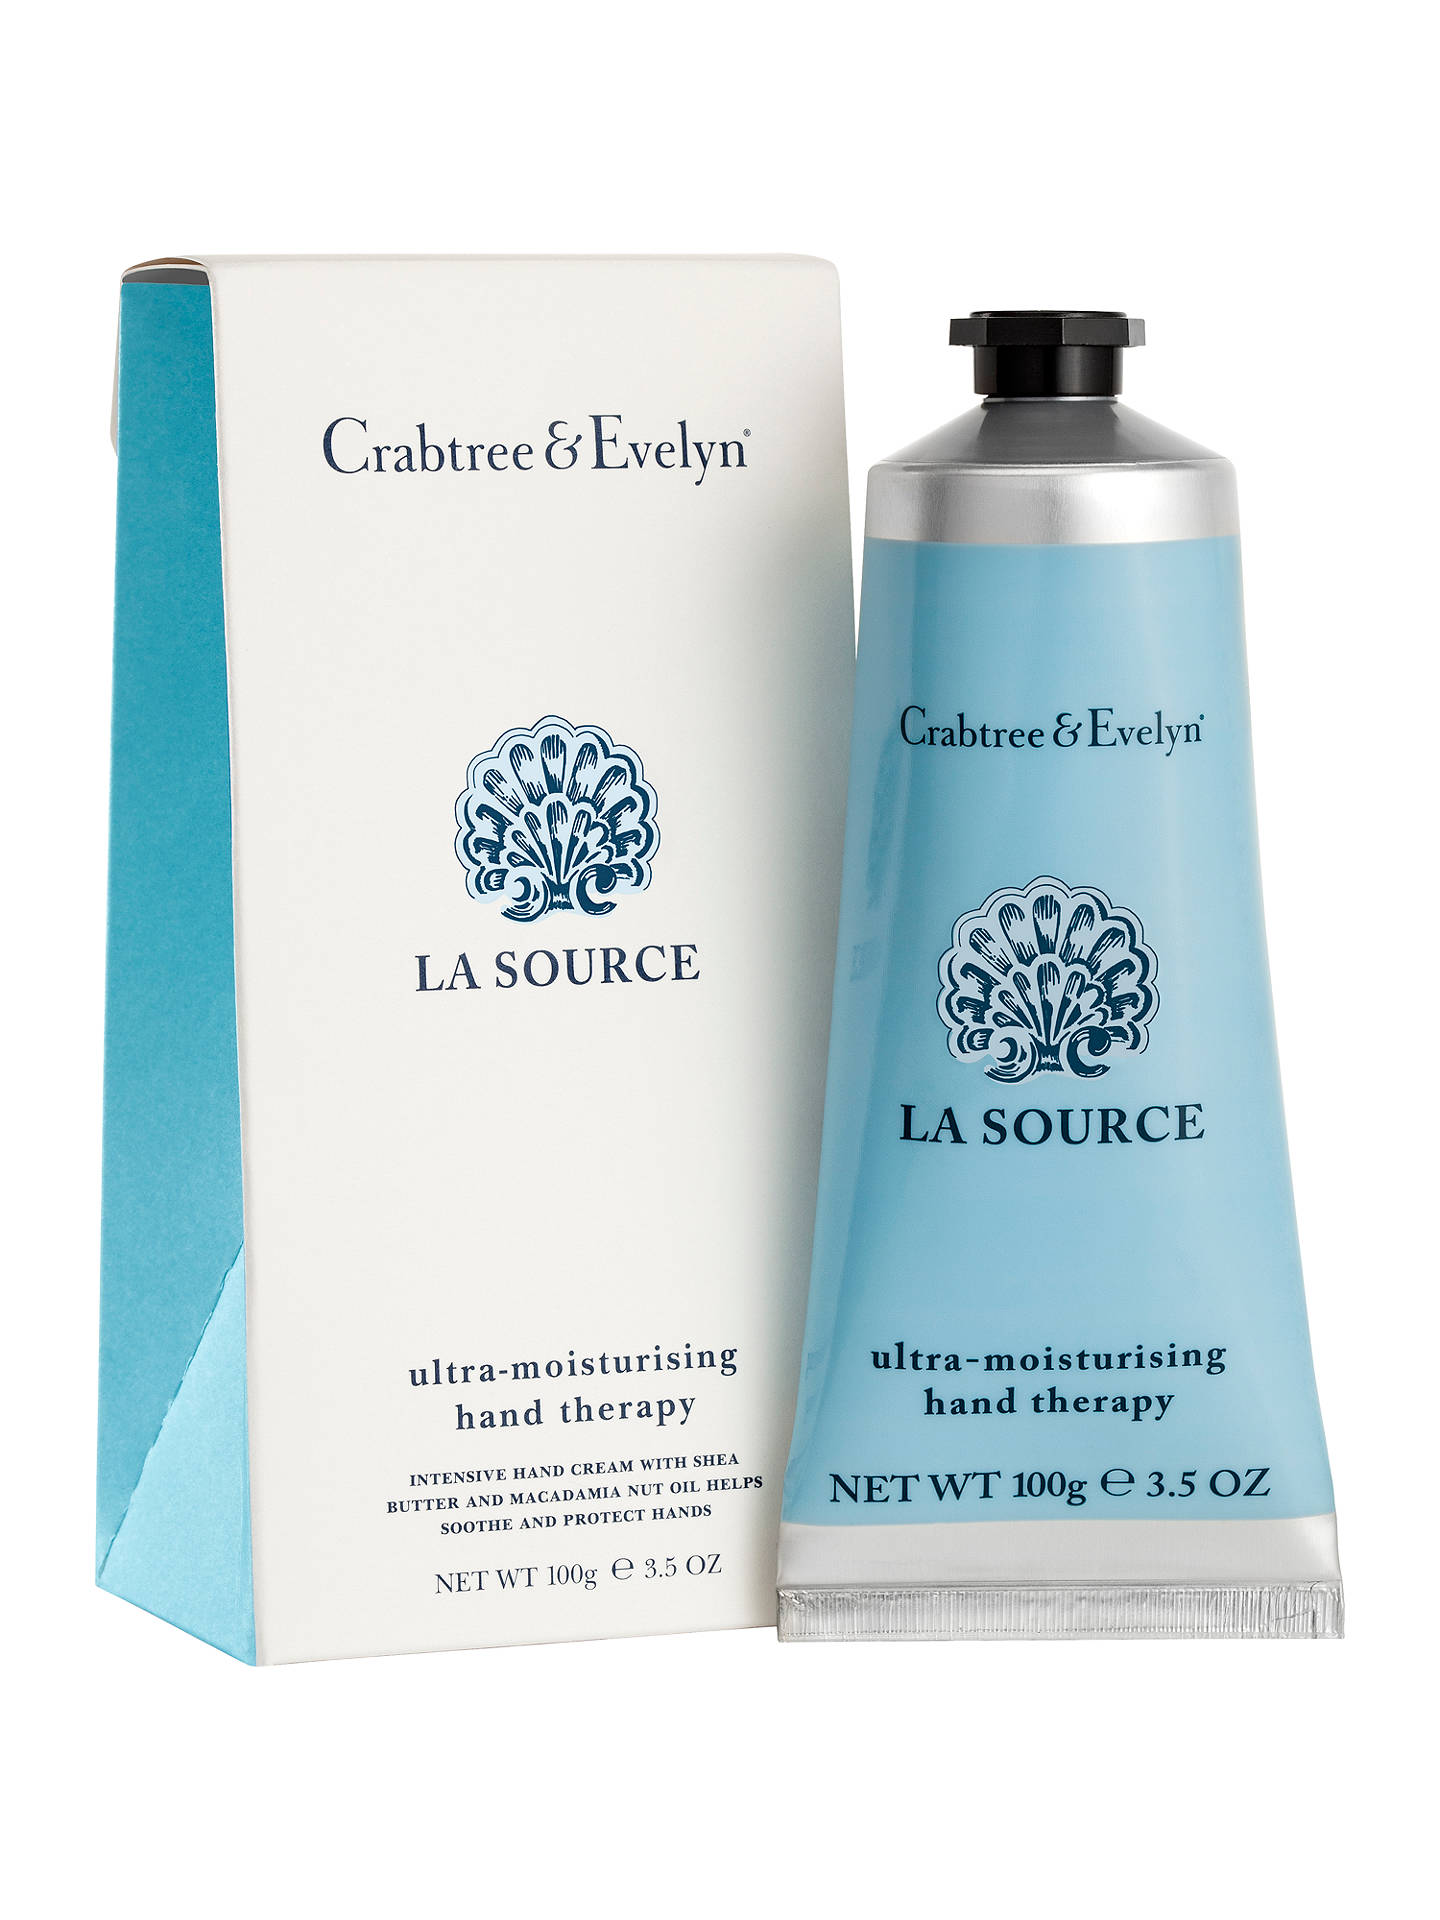 Buy Crabtree & Evelyn La Source Hand Therapy Cream, 100g Online at johnlewis.com